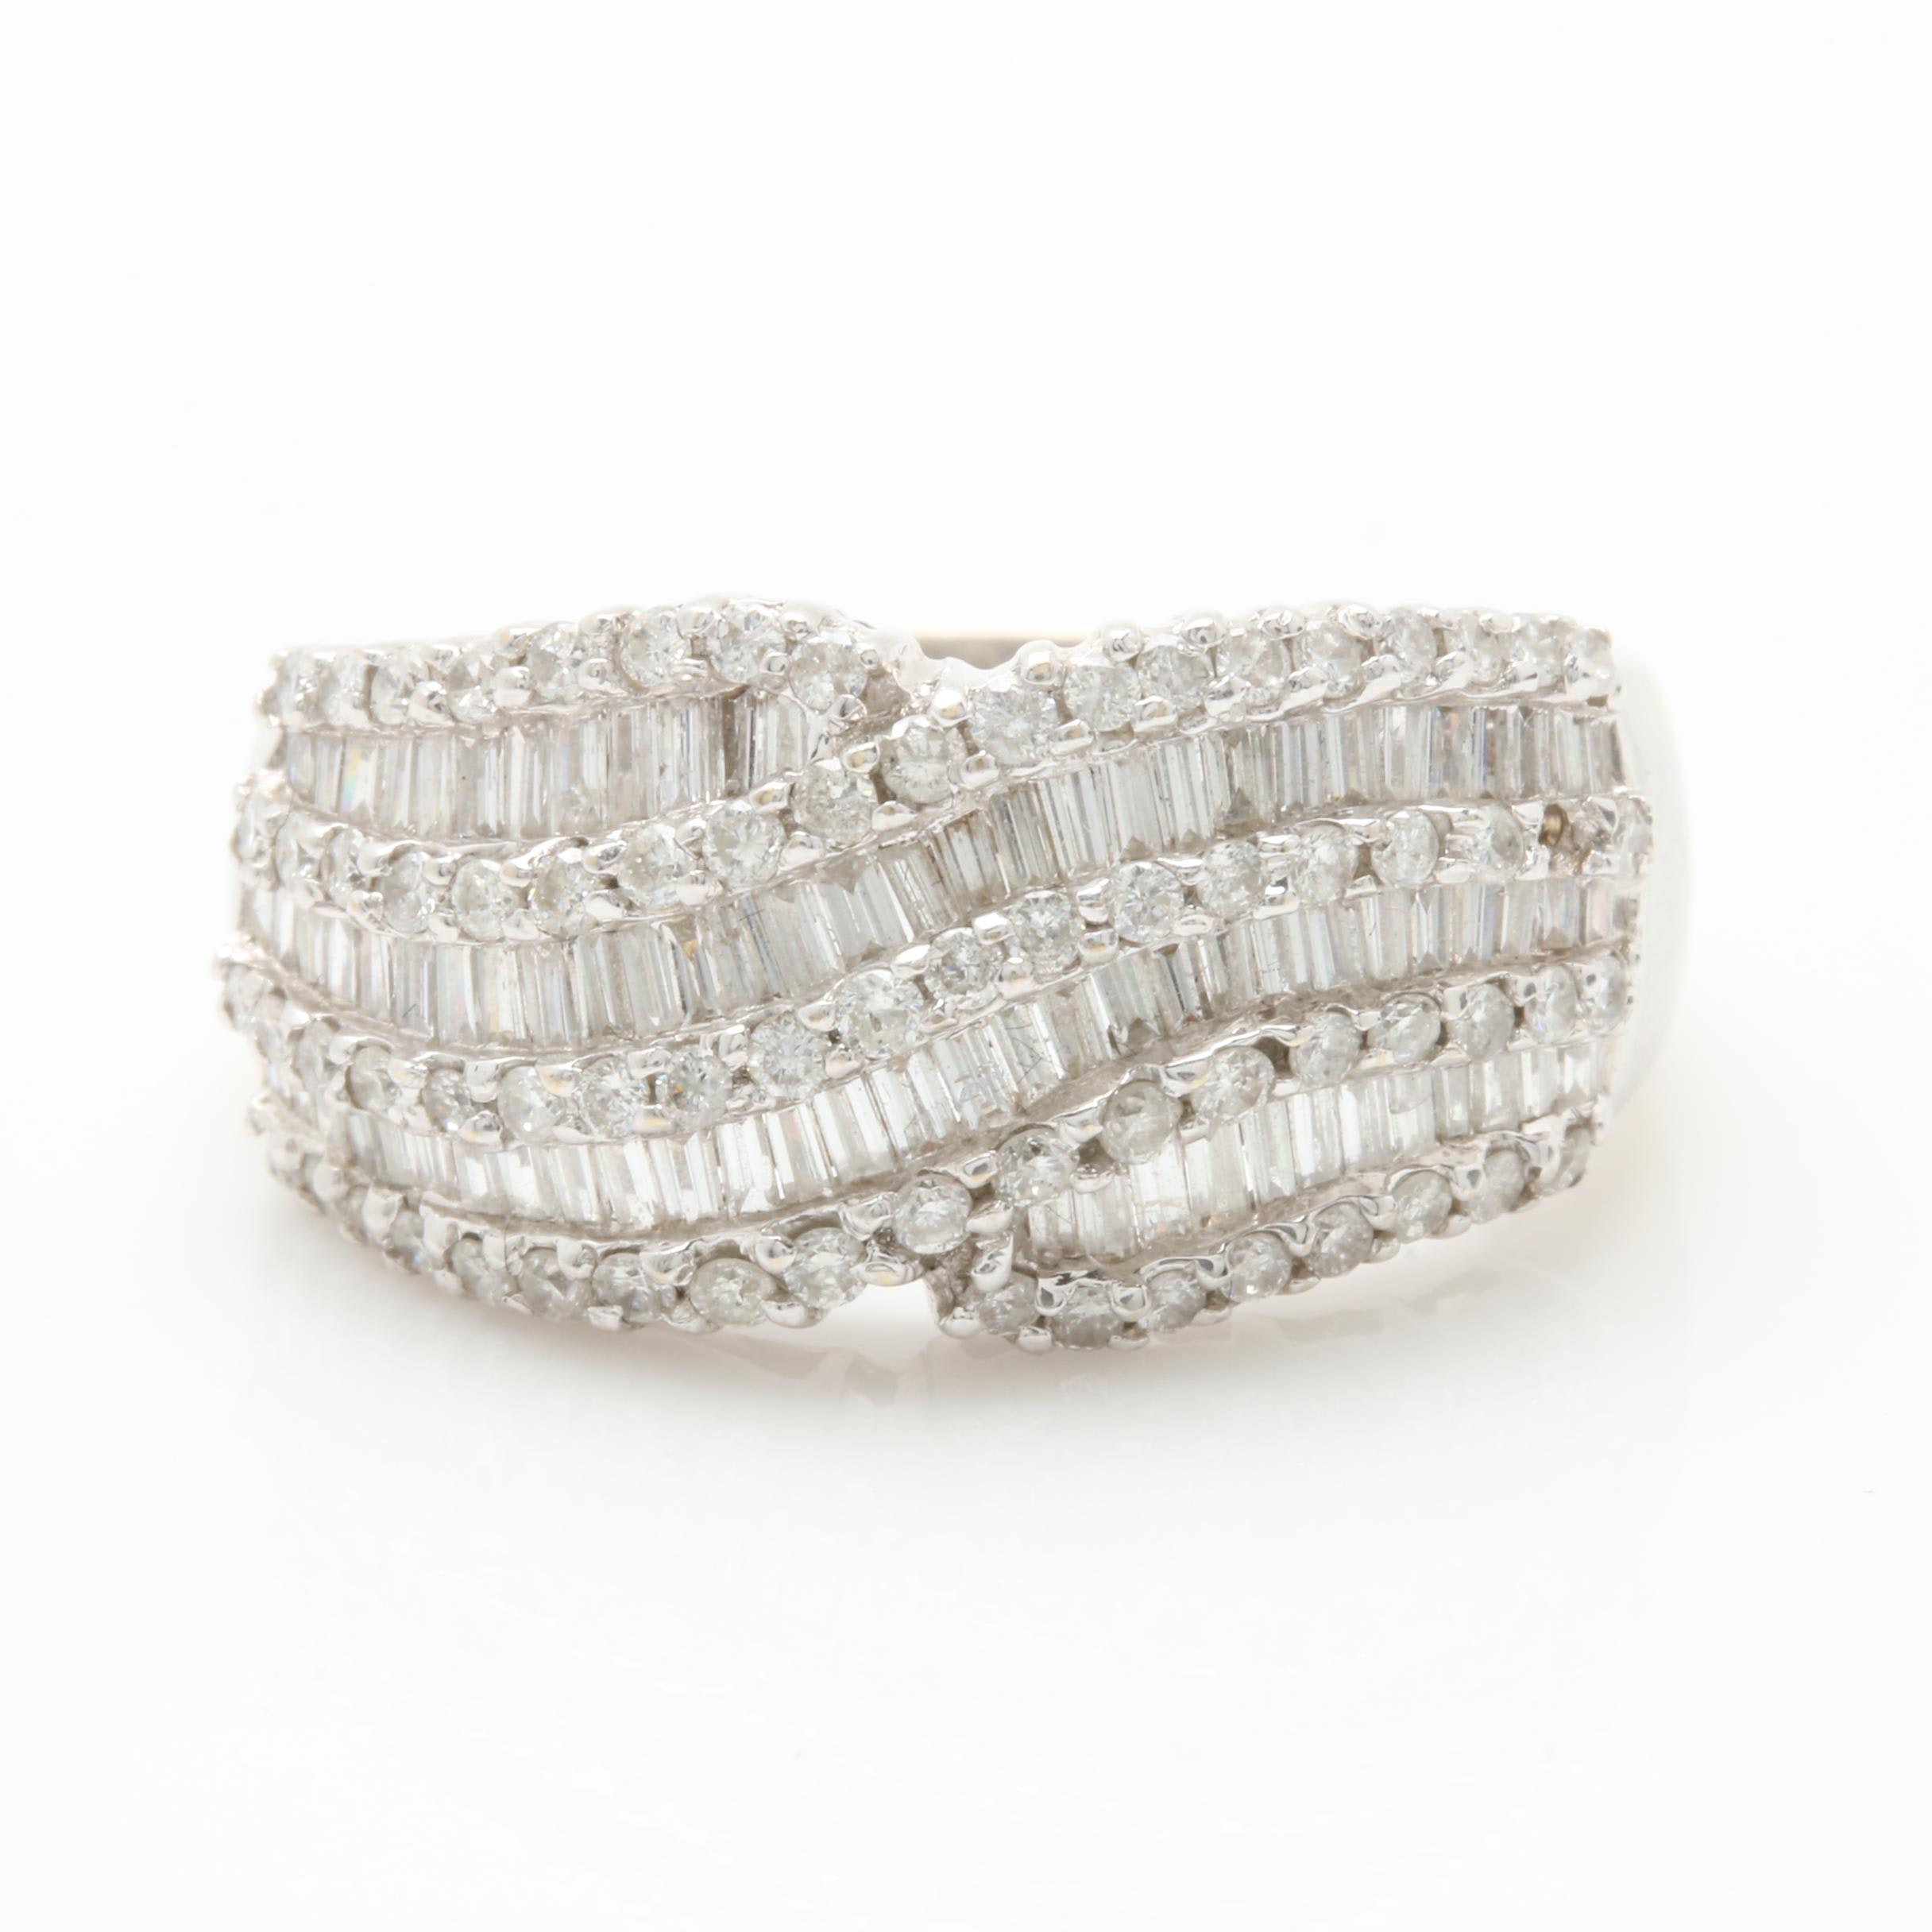 18K White Gold 1.48 CTW Diamond Ring